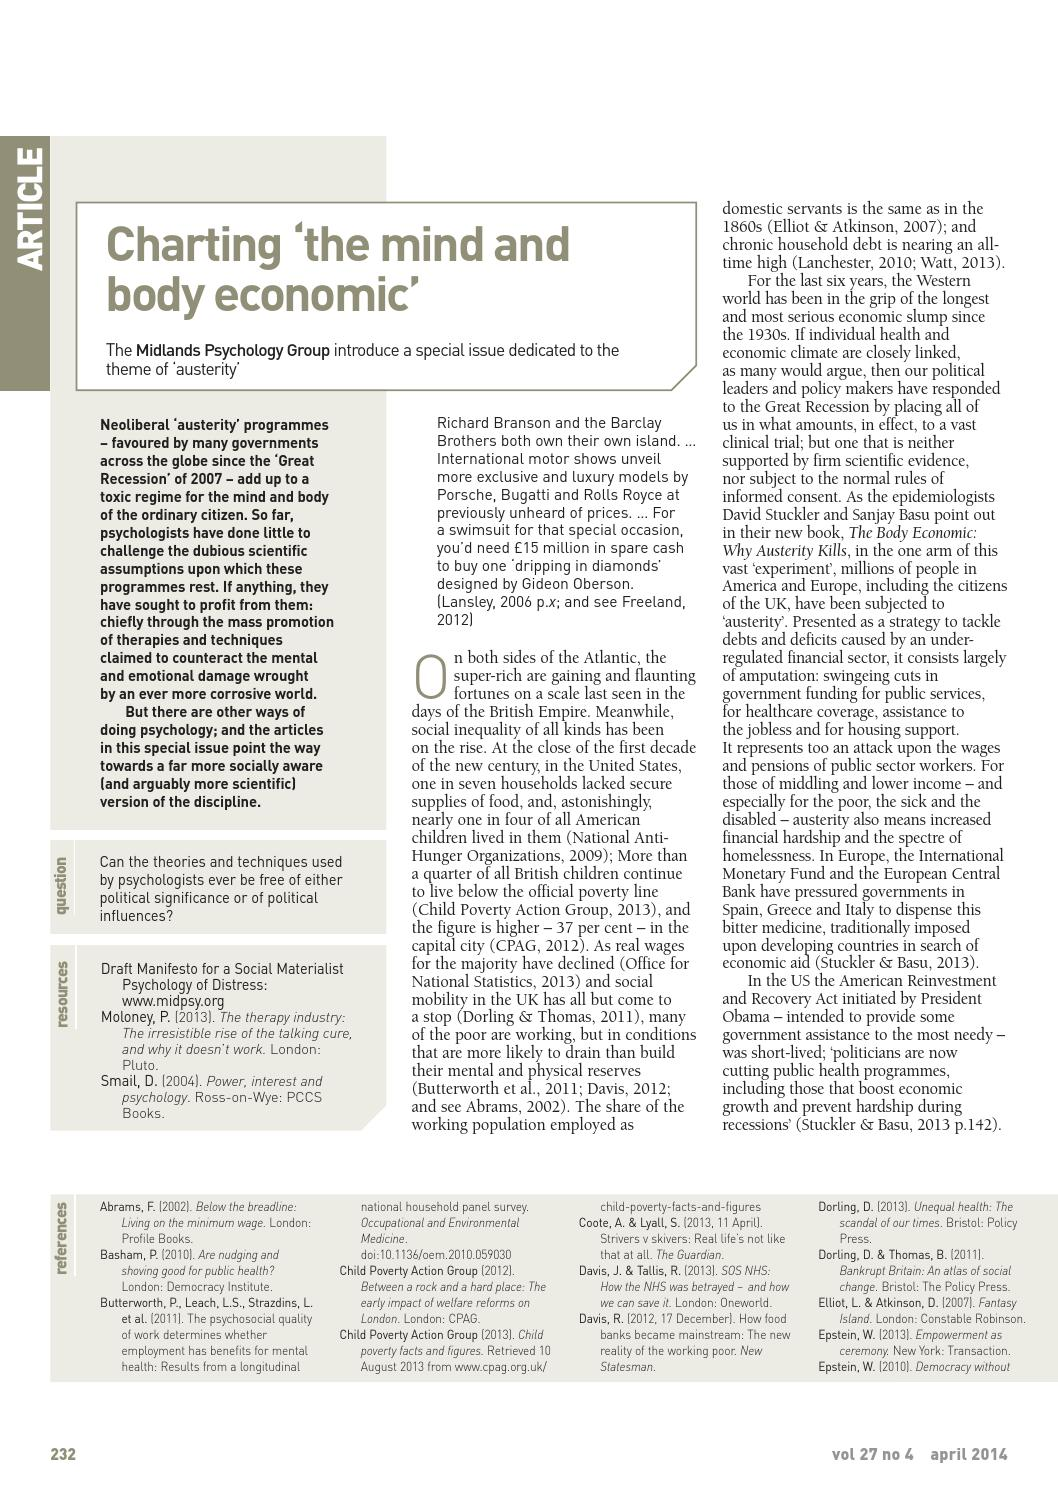 The Psychologist April 2014 by The British Psychological